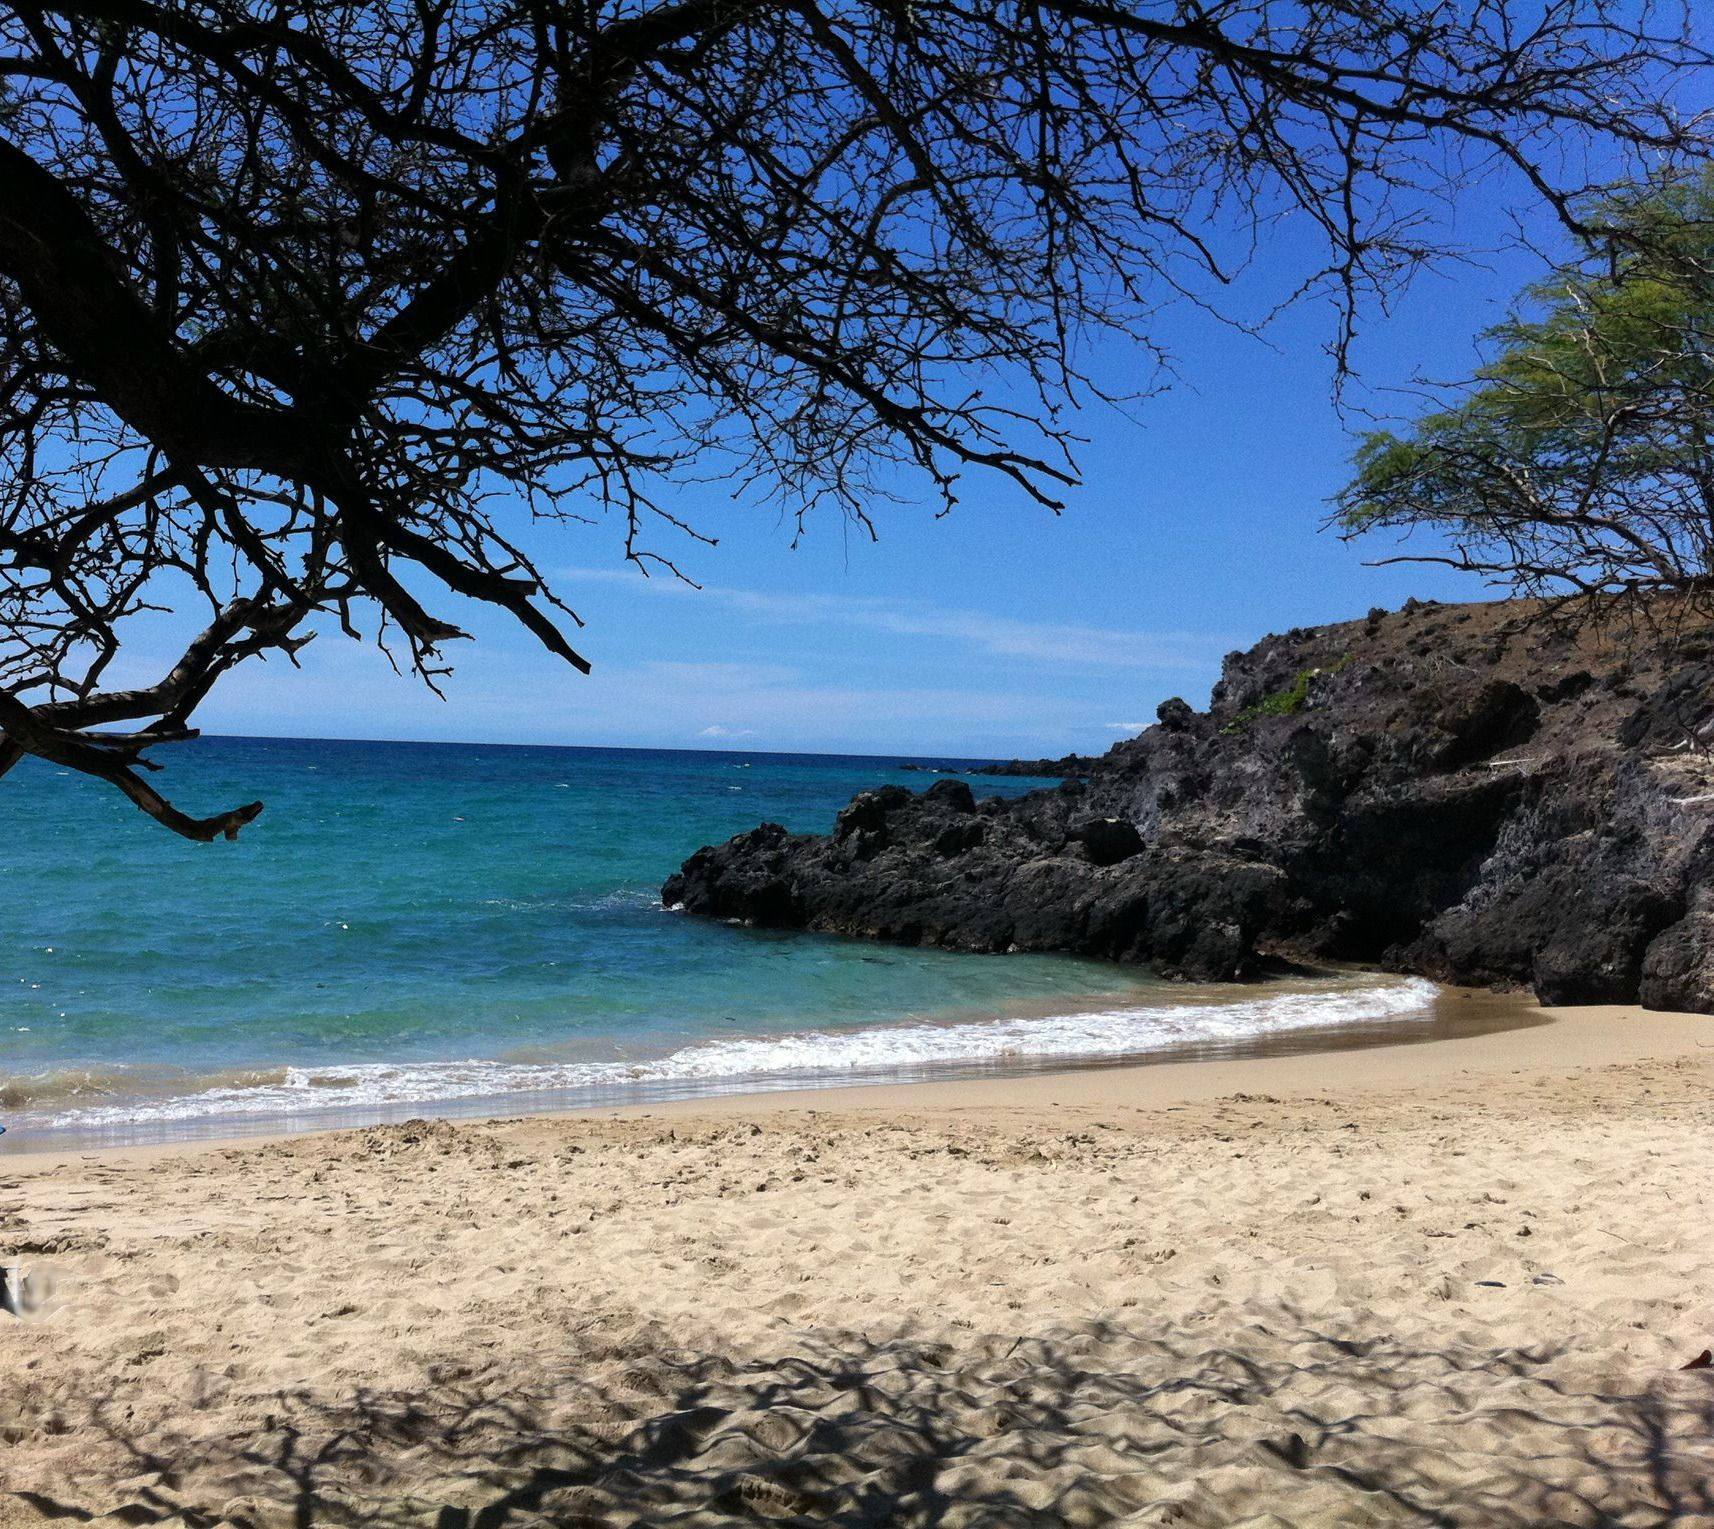 Big Island Beaches: Big Island, Hawaii, Beach